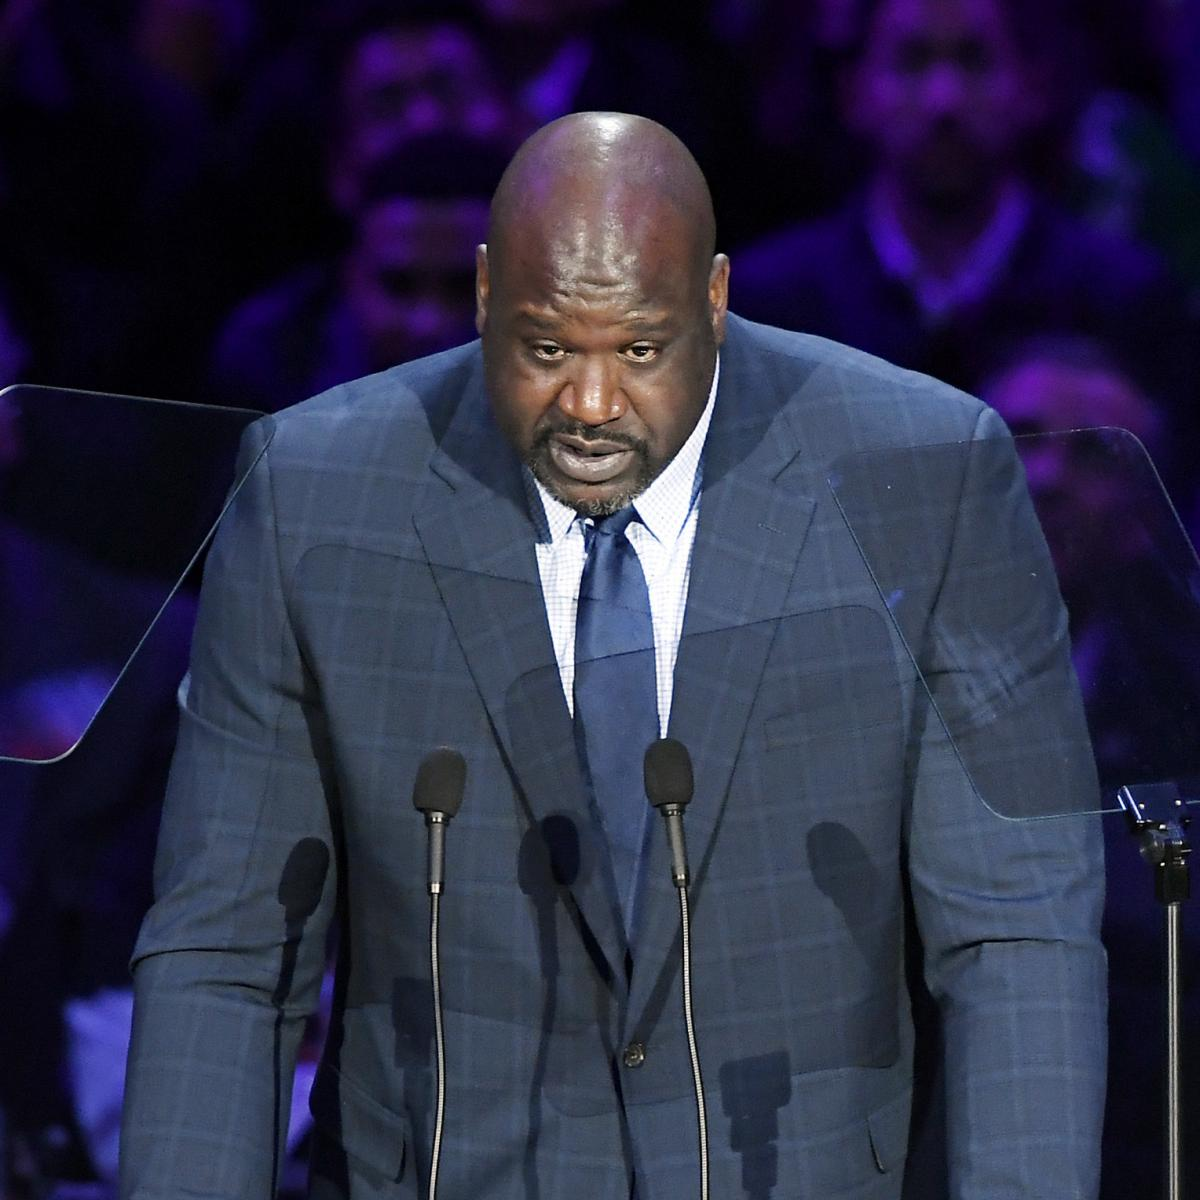 Shaquille O'Neal Tells Funny Story About Kobe Bryant Not Passing to Teammates